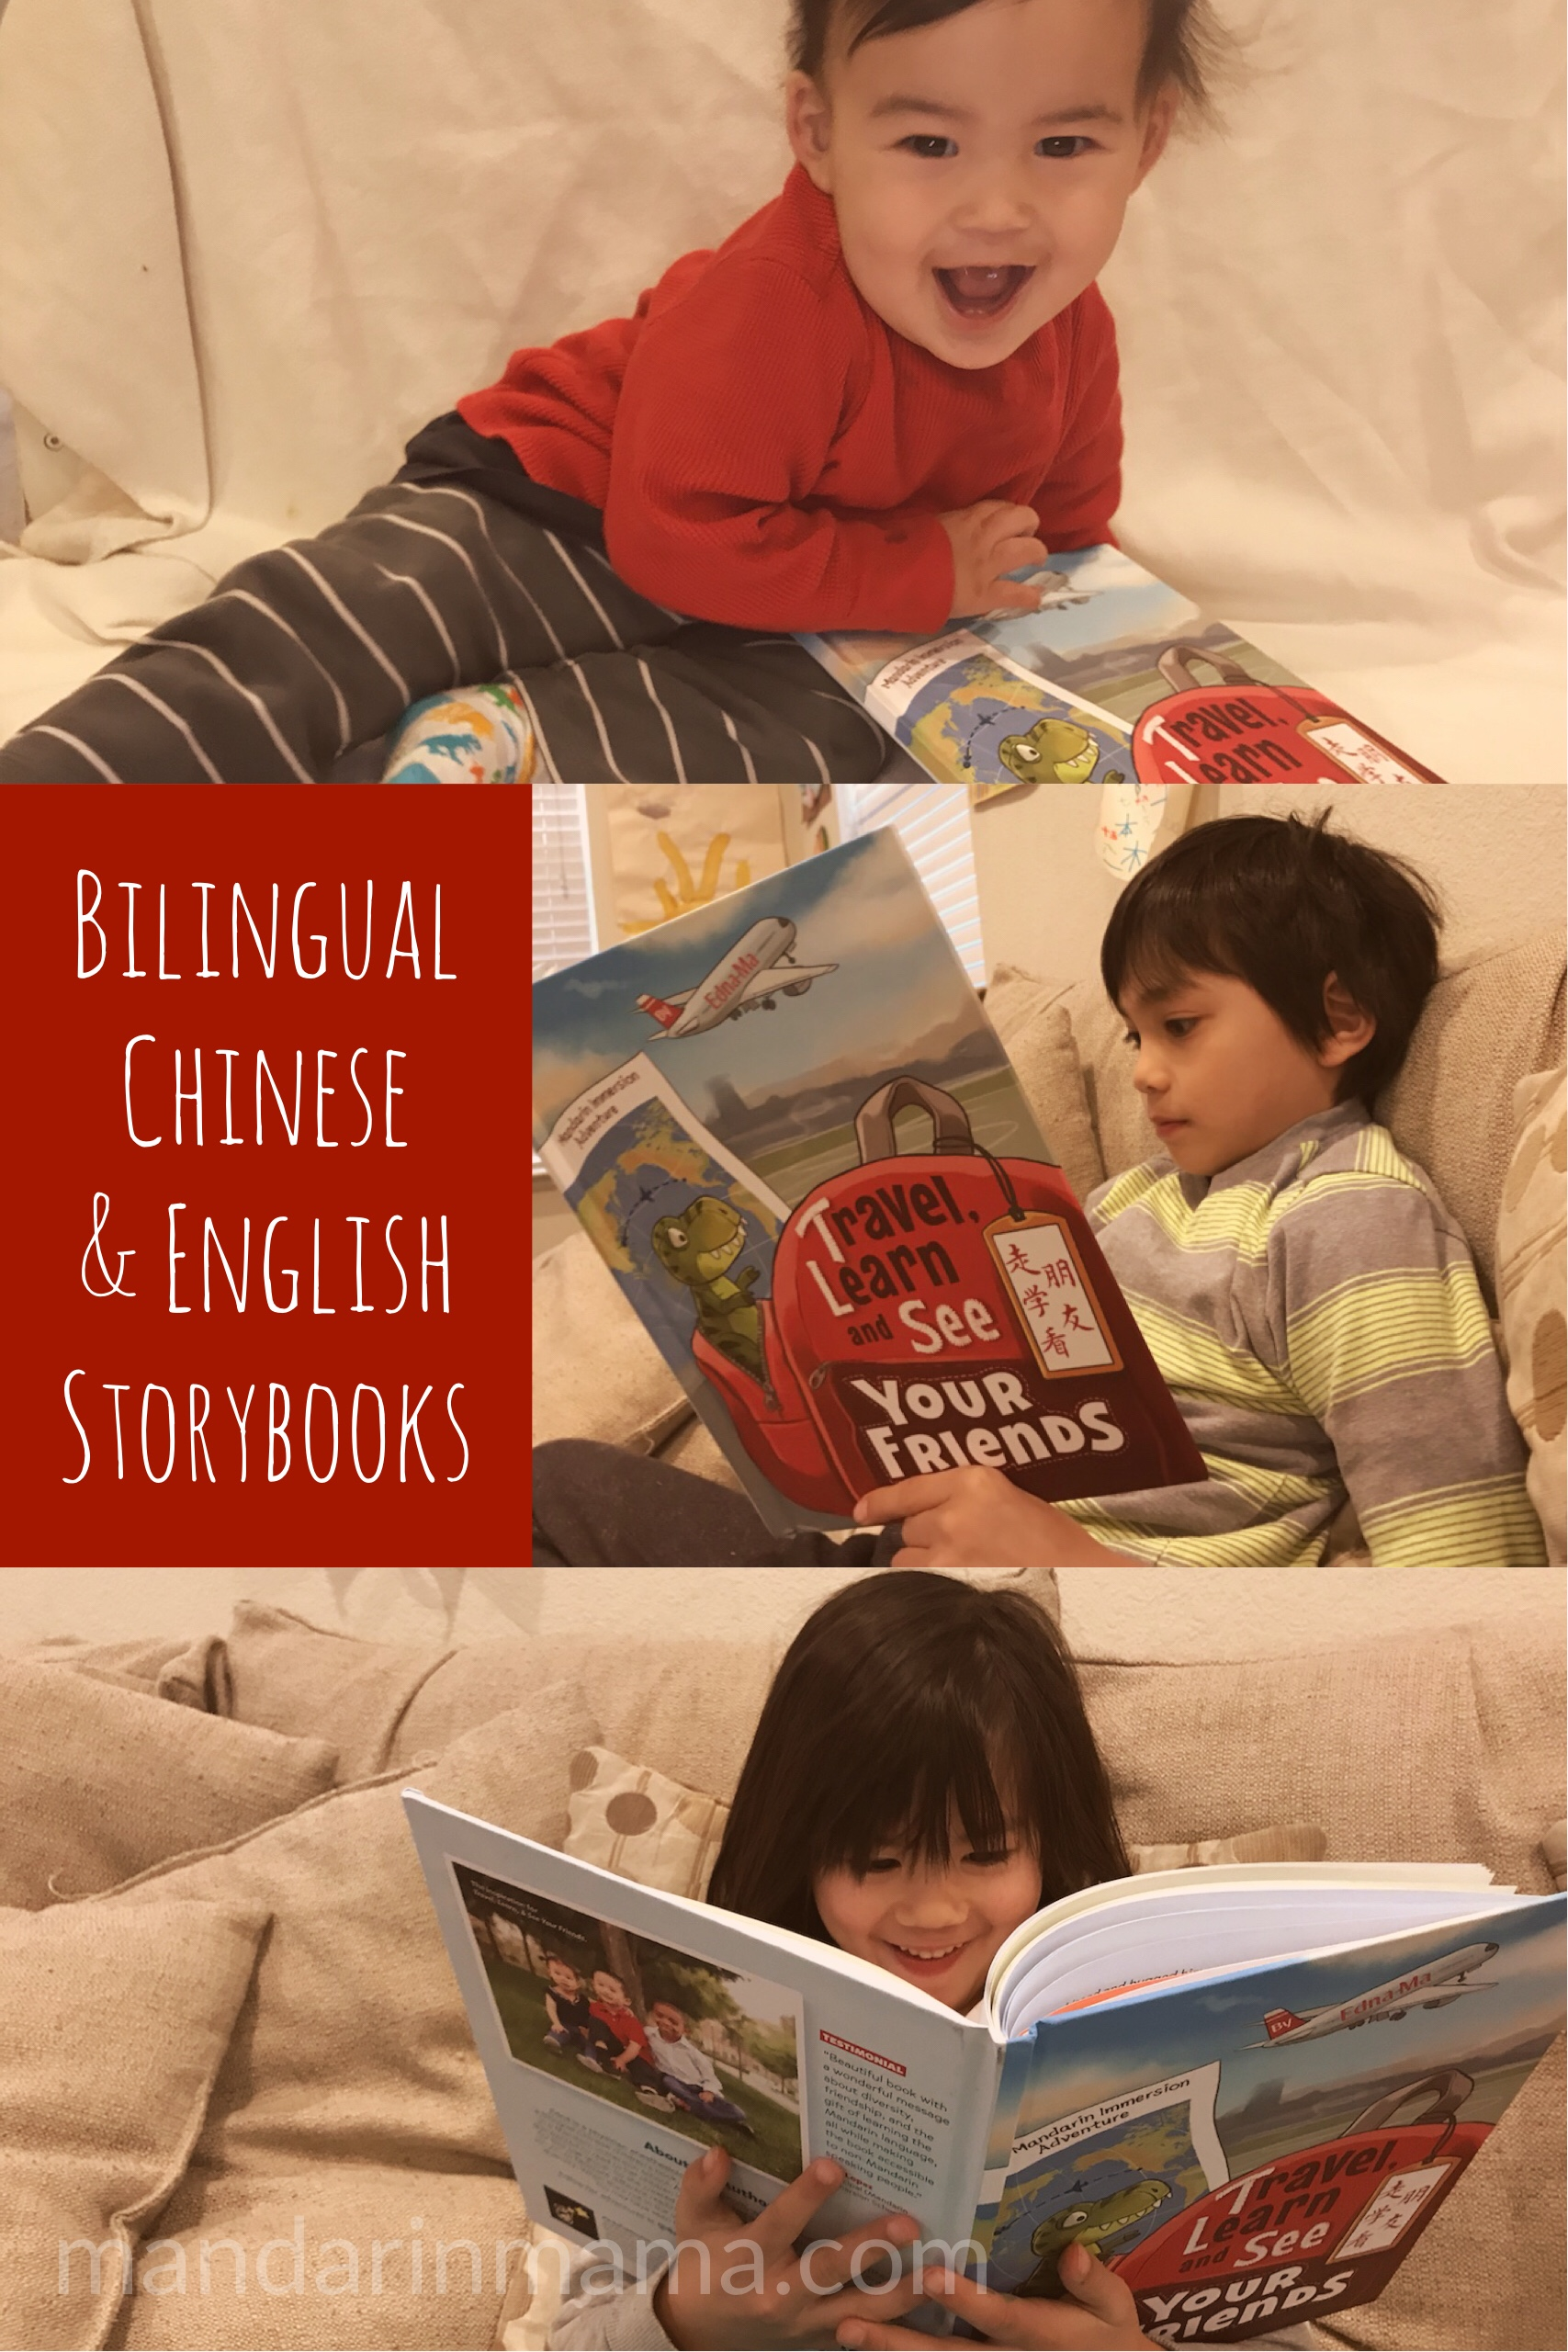 Bilingual Chinese and English Storybooks